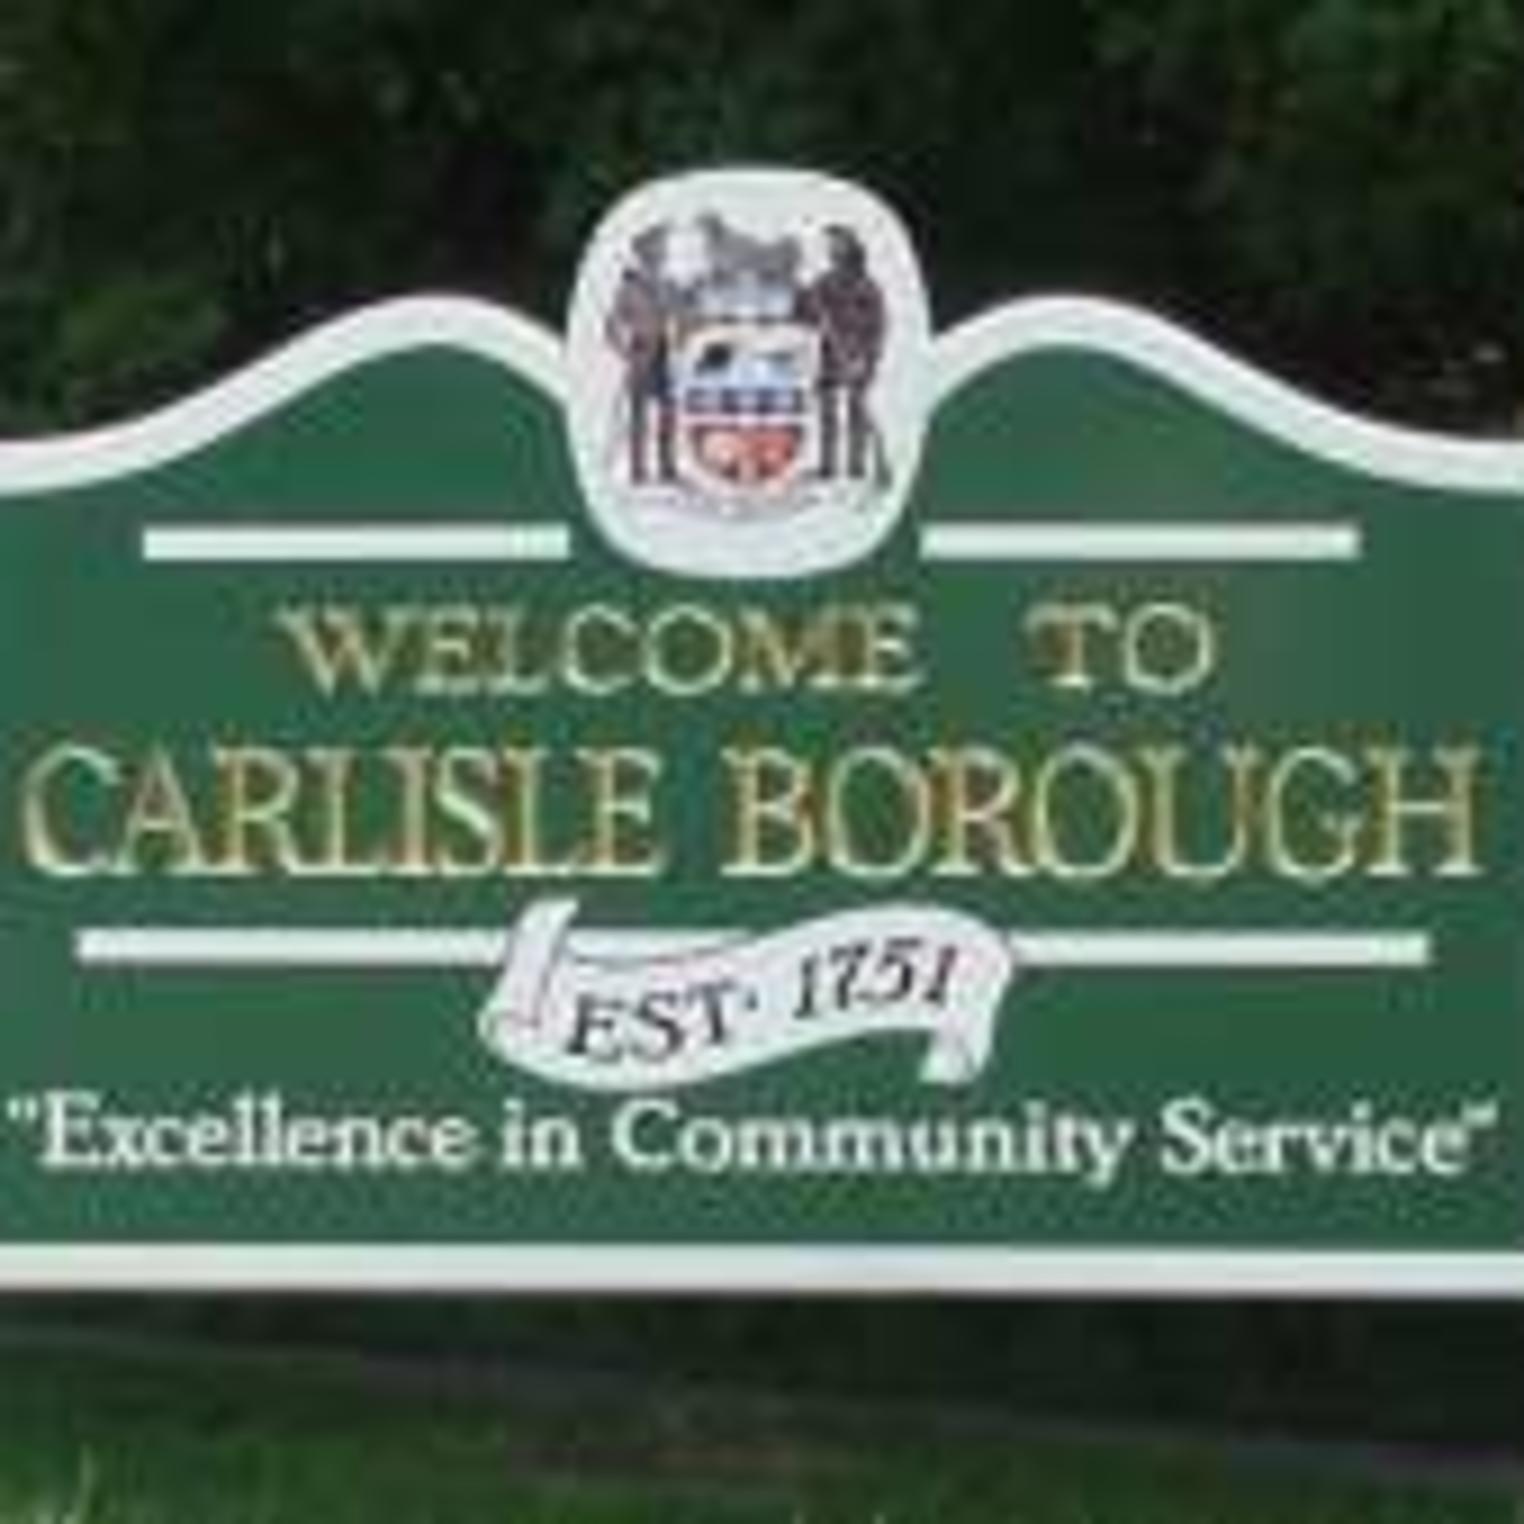 Carlisle Borough